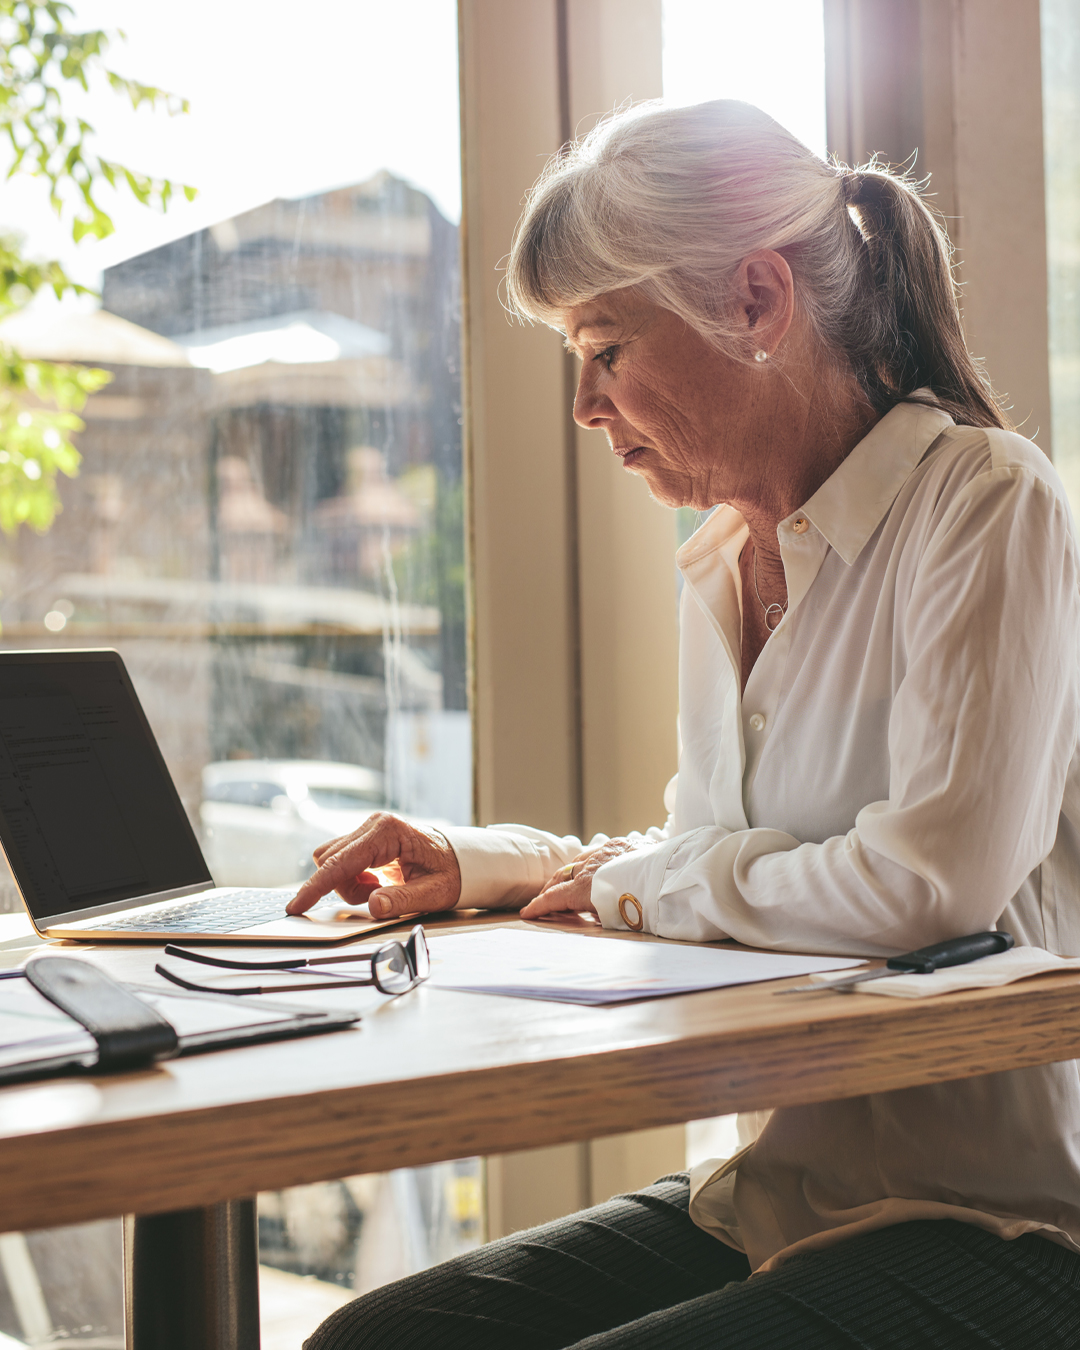 Woman looks at laptop and papers